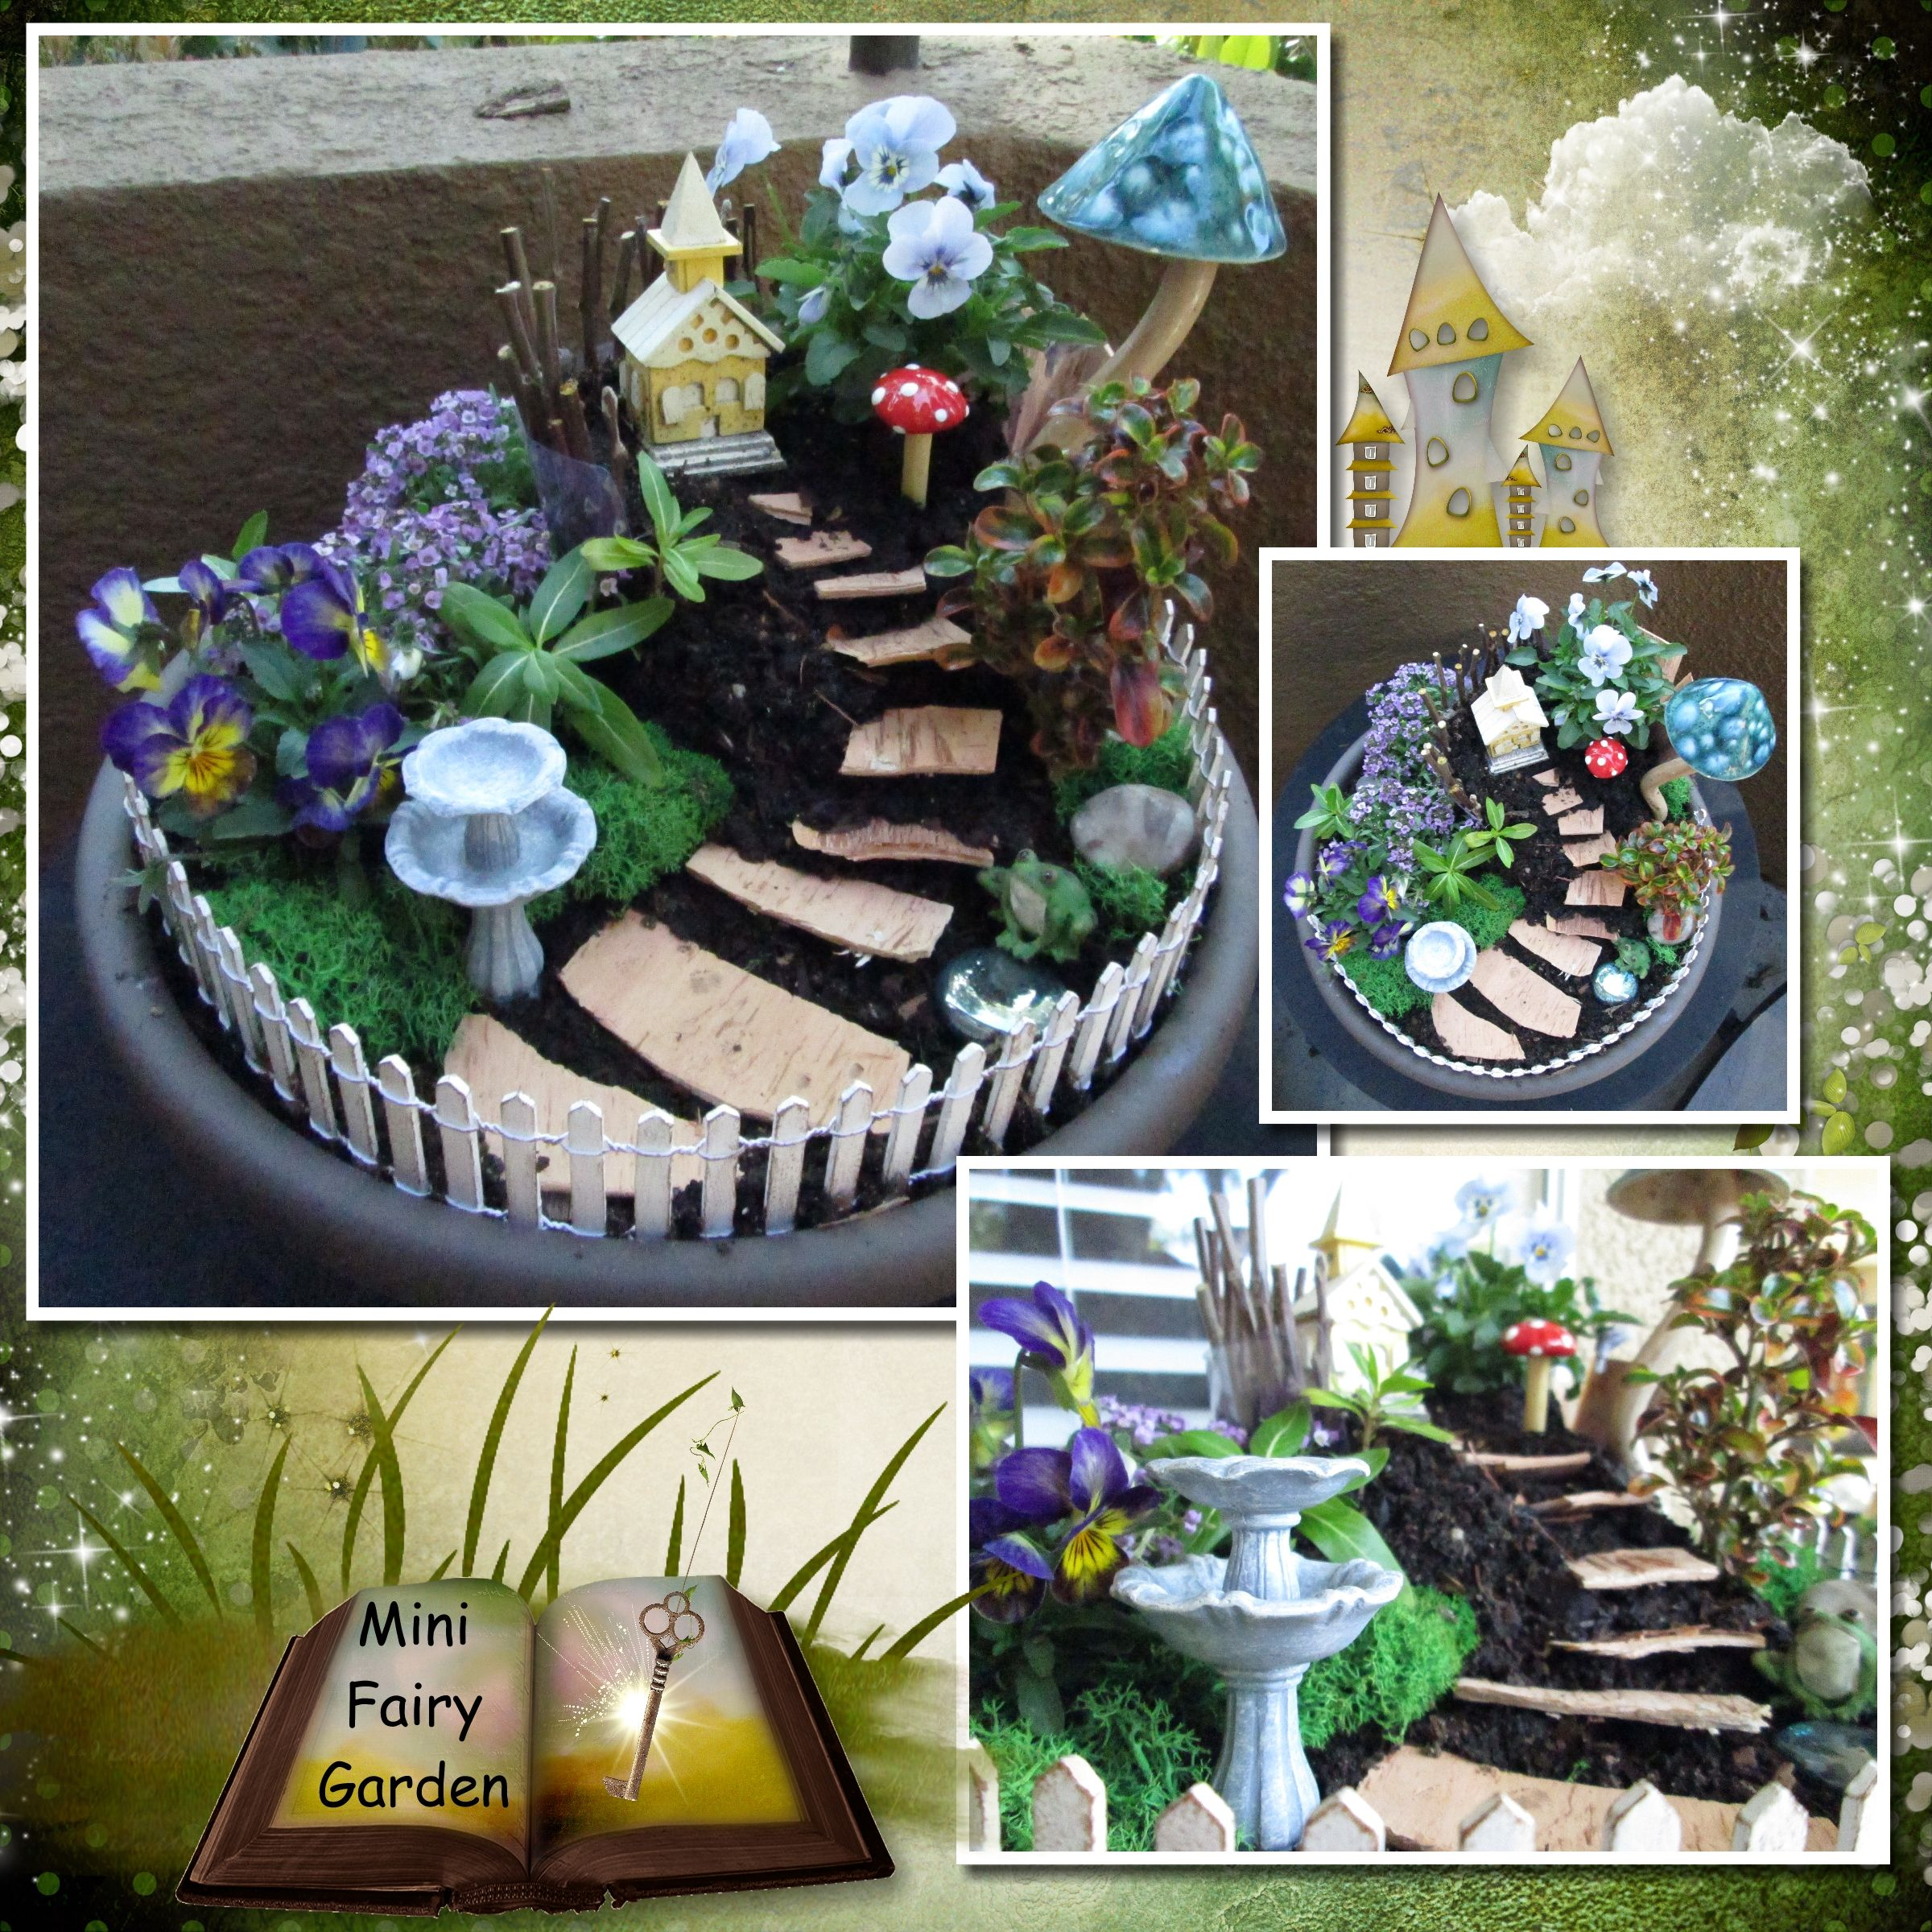 Potted mini fairy garden with mushrooms, fountain and bark steps. Easy to make!